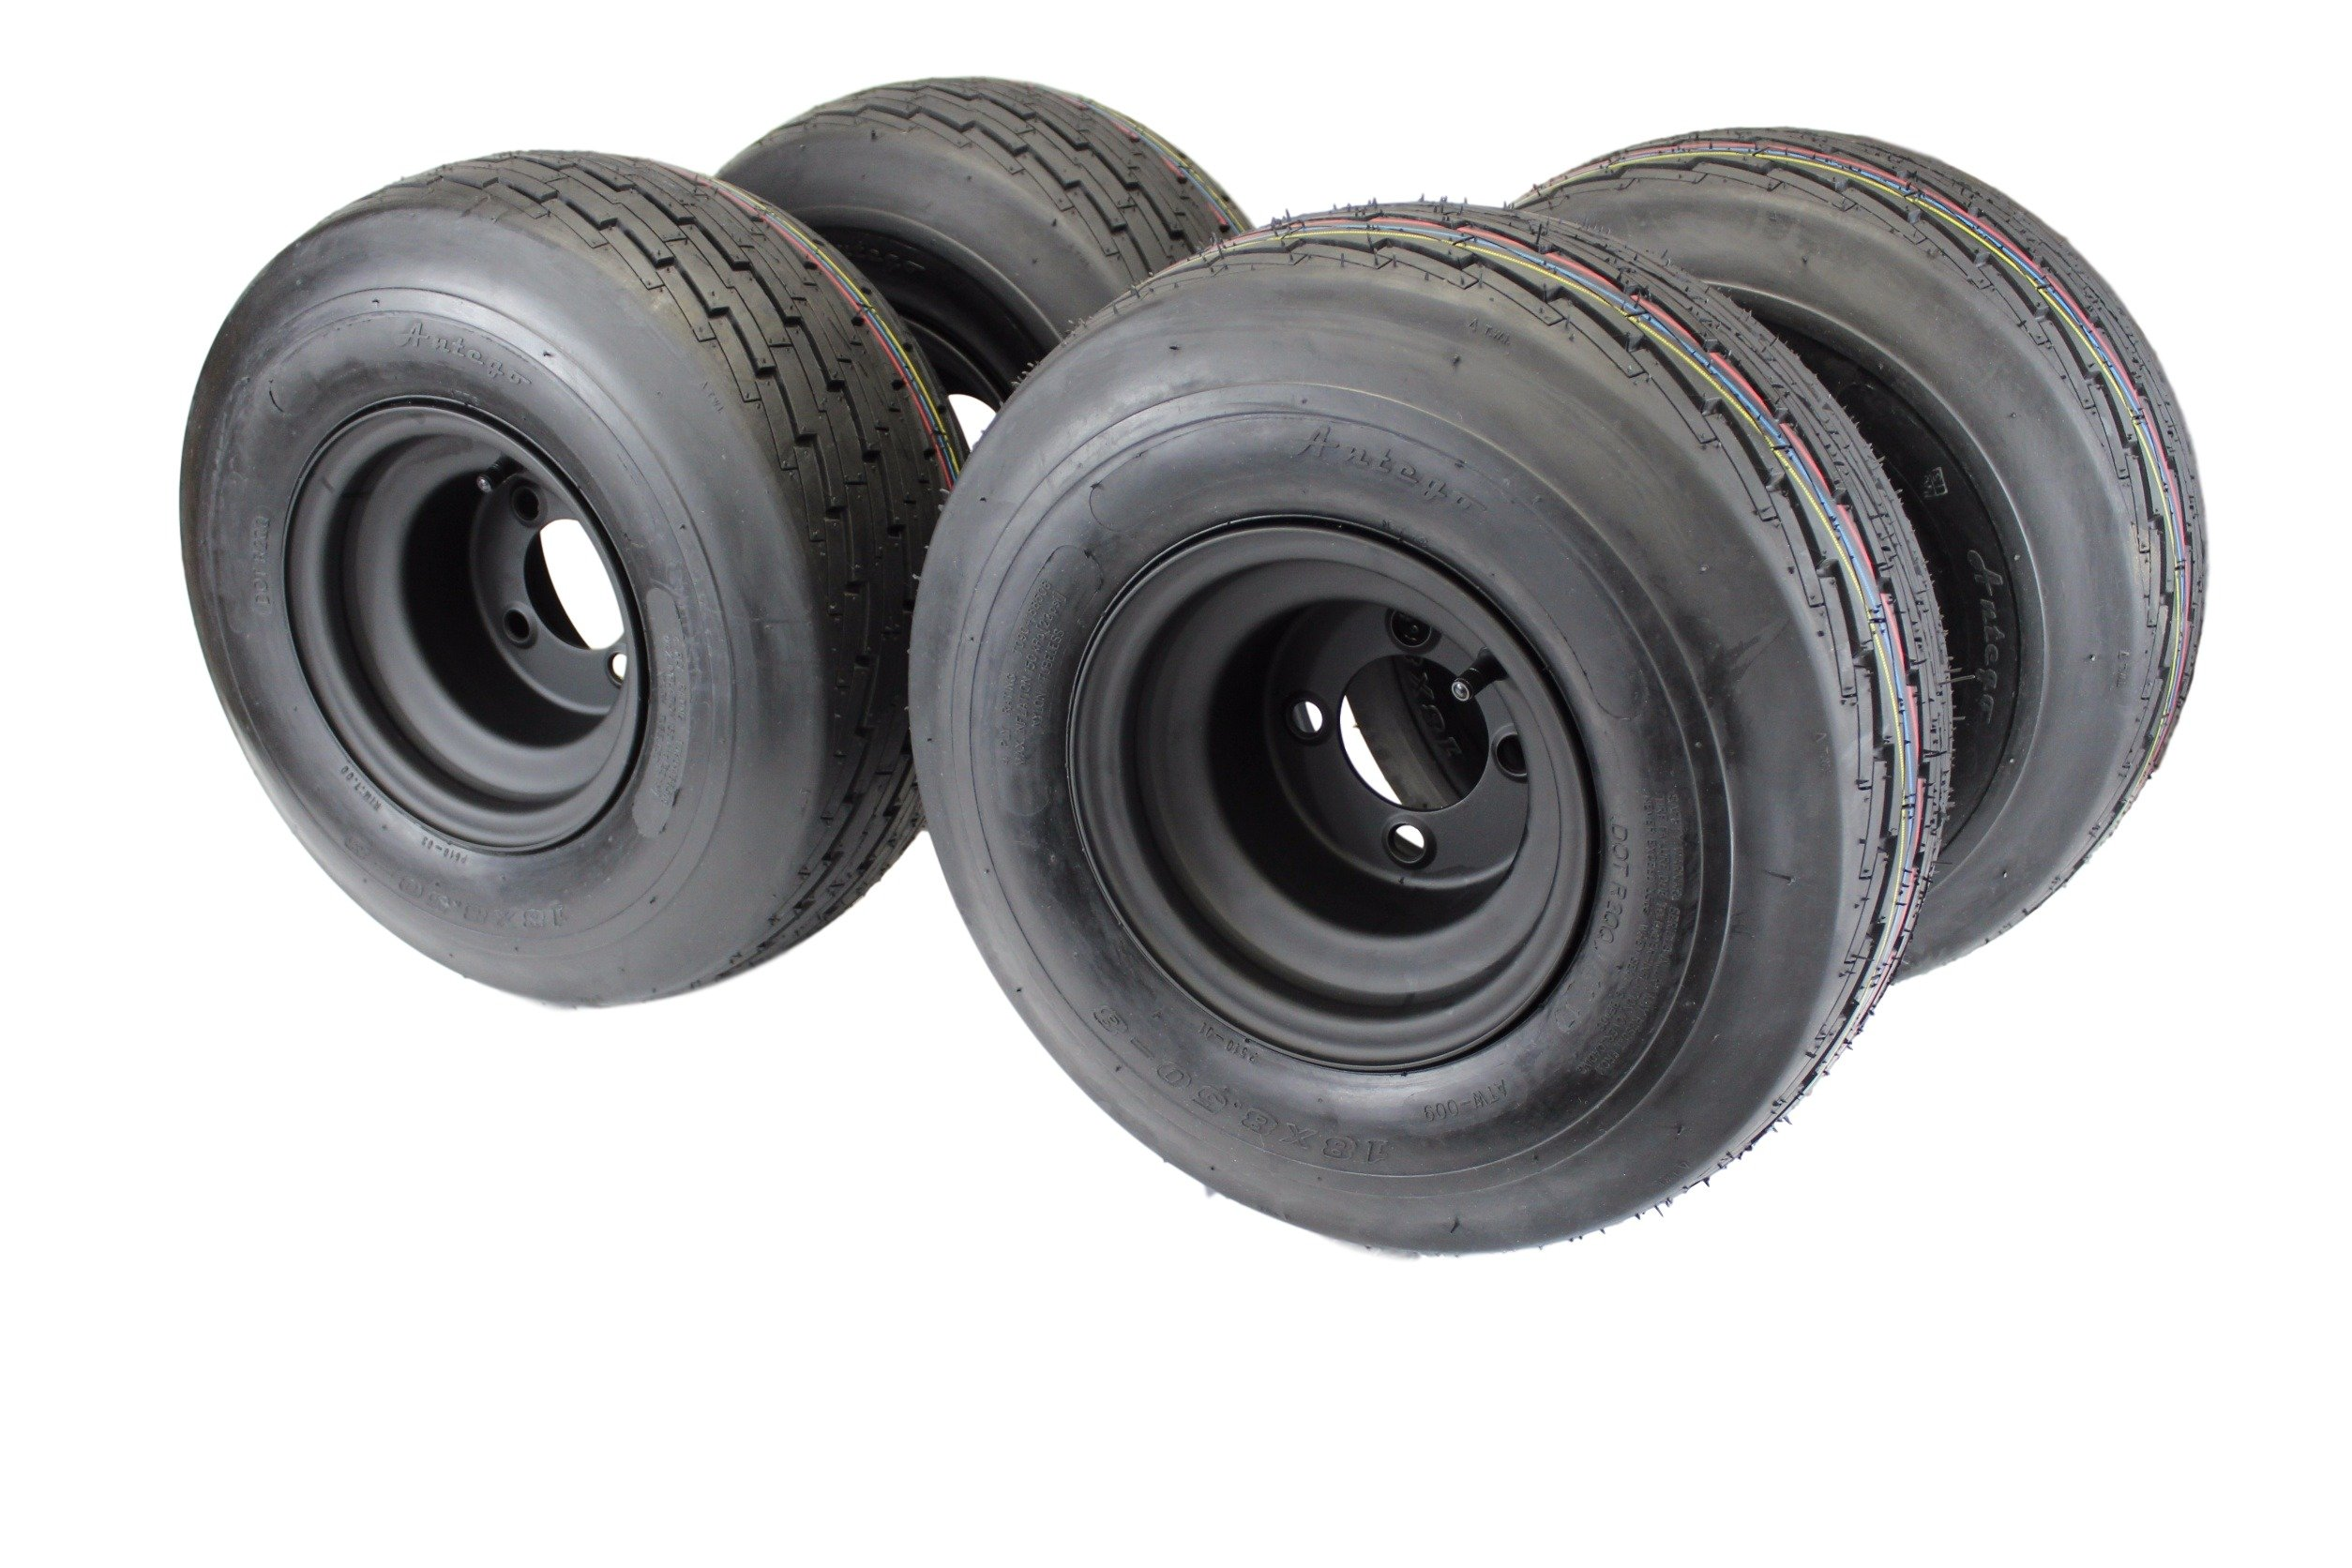 18x8.50-8 with 8x7 Matte Black Wheel Assembly for Golf Cart & Lawn Mower (Set of 4)